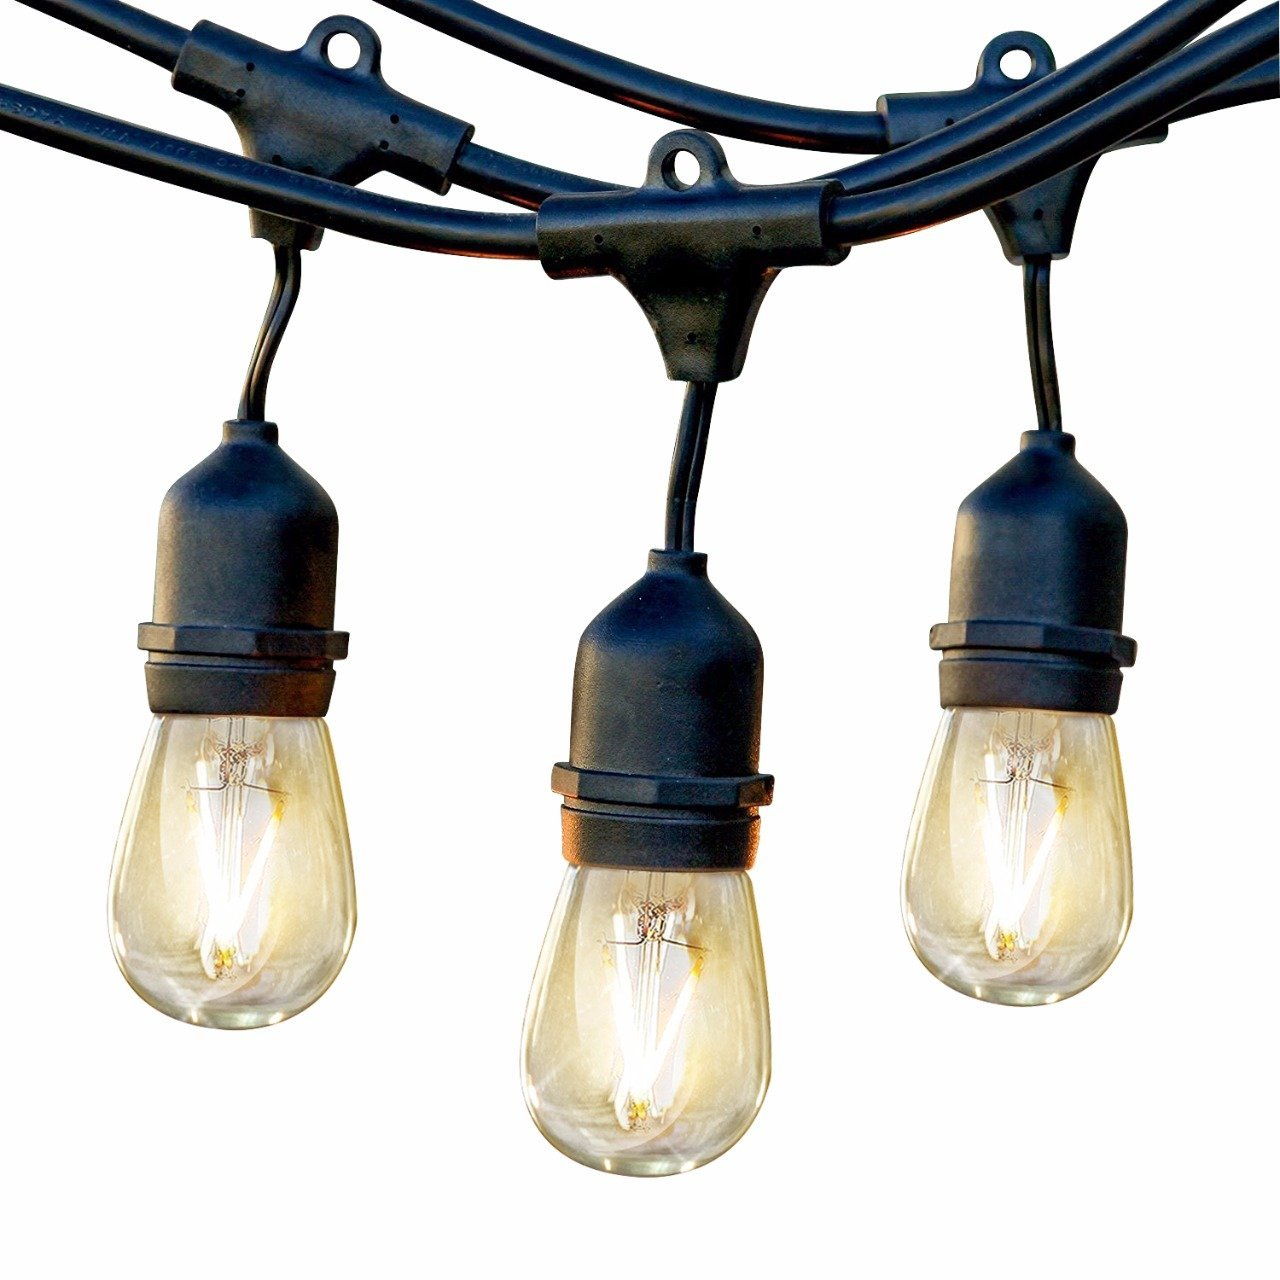 Brightech Ambience Pro LED Commercial Grade Outdoor Light Strand with Hanging Sockets - Non-Dimmable 2W Bulbs - 48 Ft Market Cafe Edison Vintage Bistro Weatherproof Strand for Porch Patio Garden -Blk